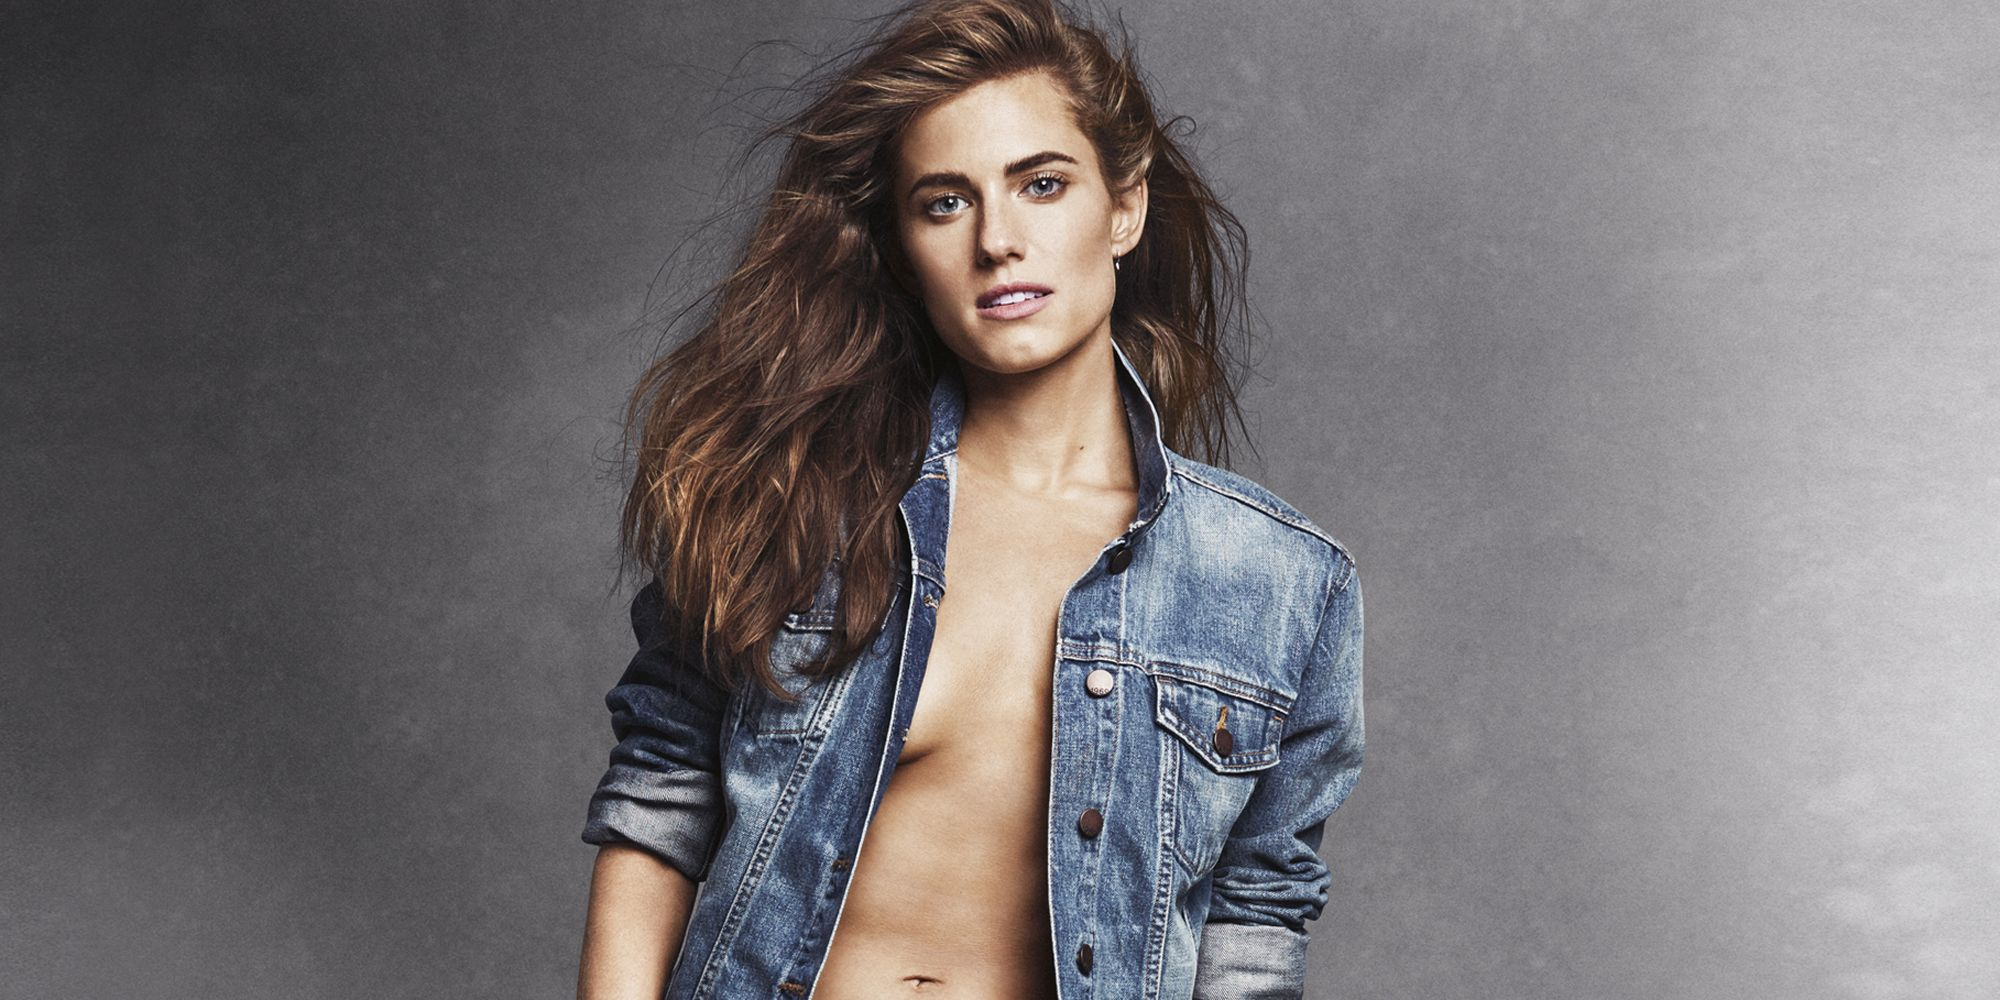 Allison williams foto 73